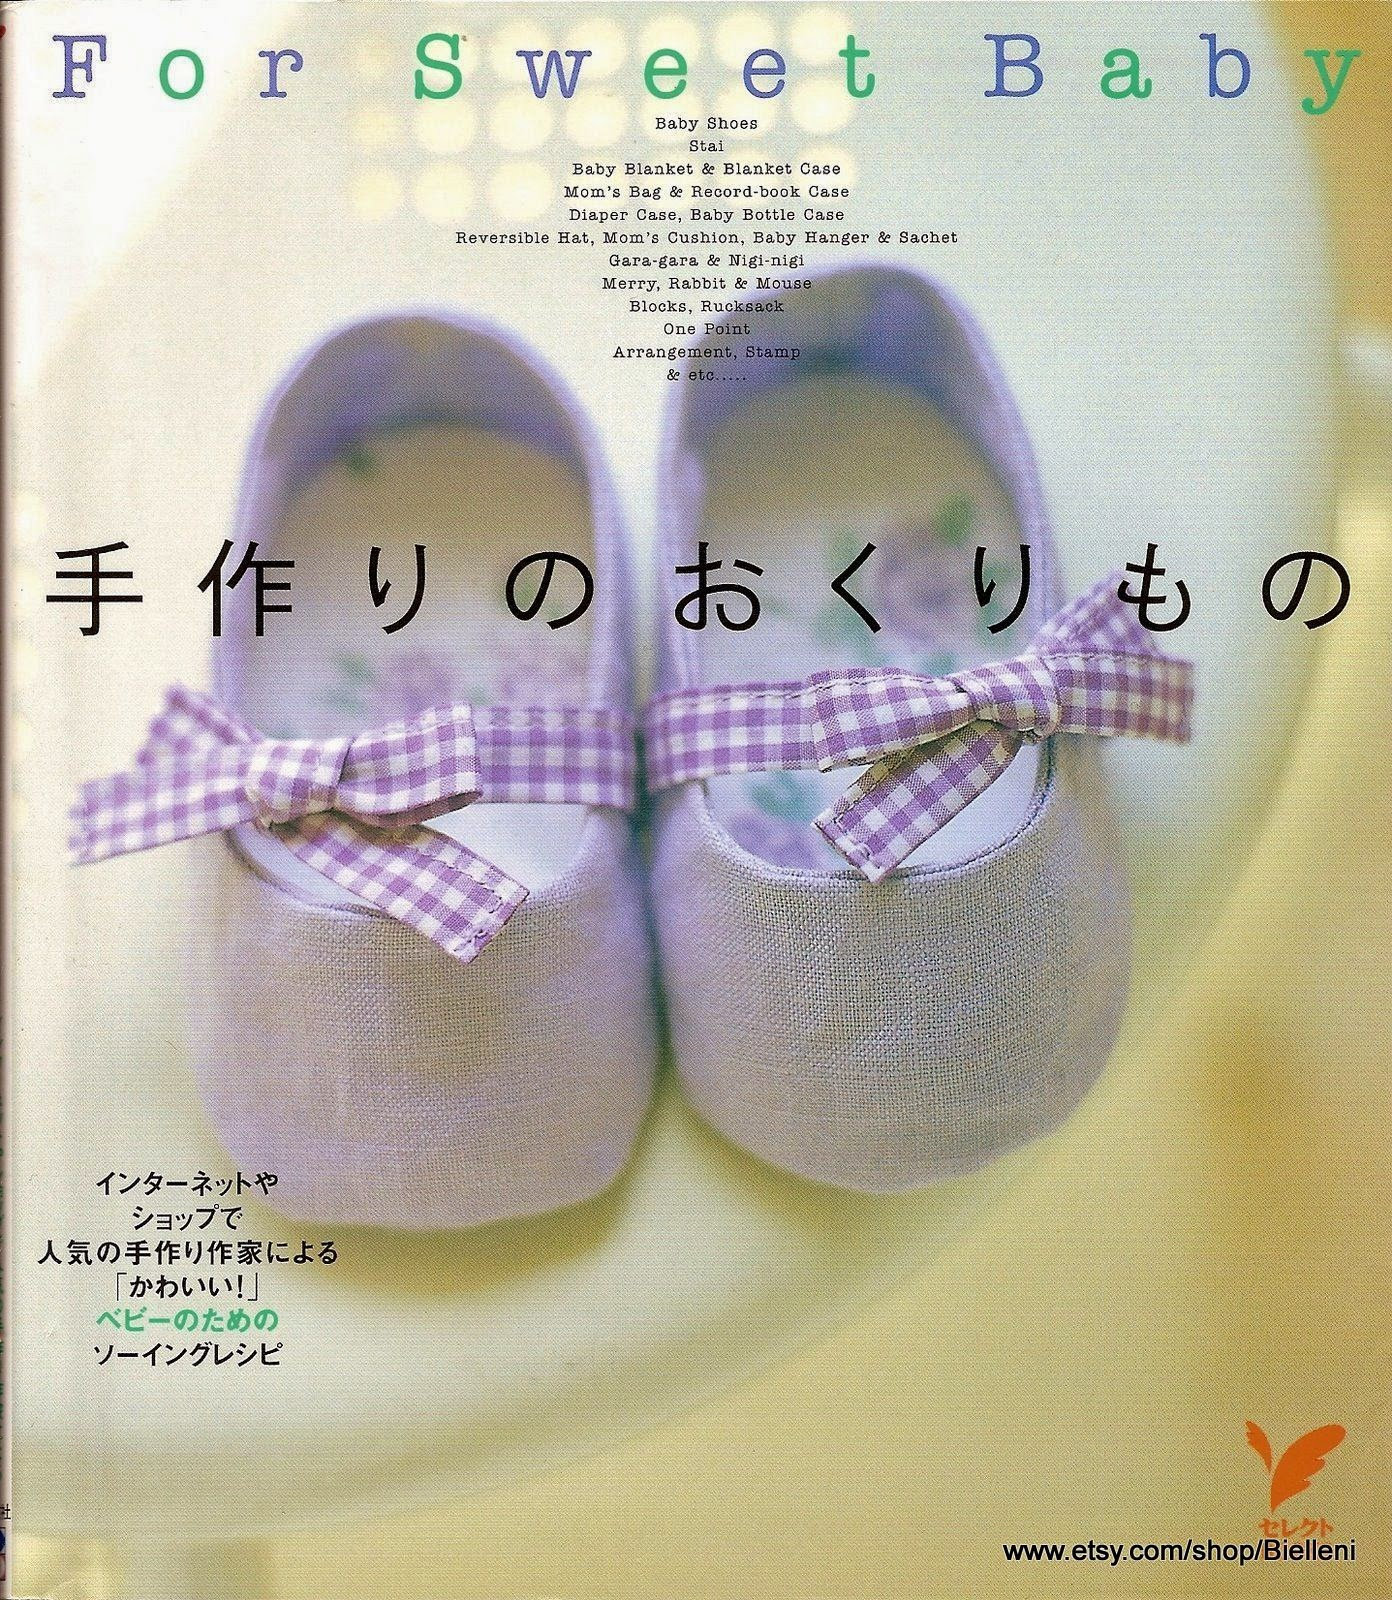 DIY, Needlefelt,Needle,Felt,felting,sewing,crafts,fabric, sew,japanese,ebook,pdf, pattern,kawaii,plushie,toys,dolls,sweets, foods,kids,children, cake,schemi,diagram,accessories,baby,buku, flanel,kain,fabric,kreasi,patchwork,bib,shoes,bags,